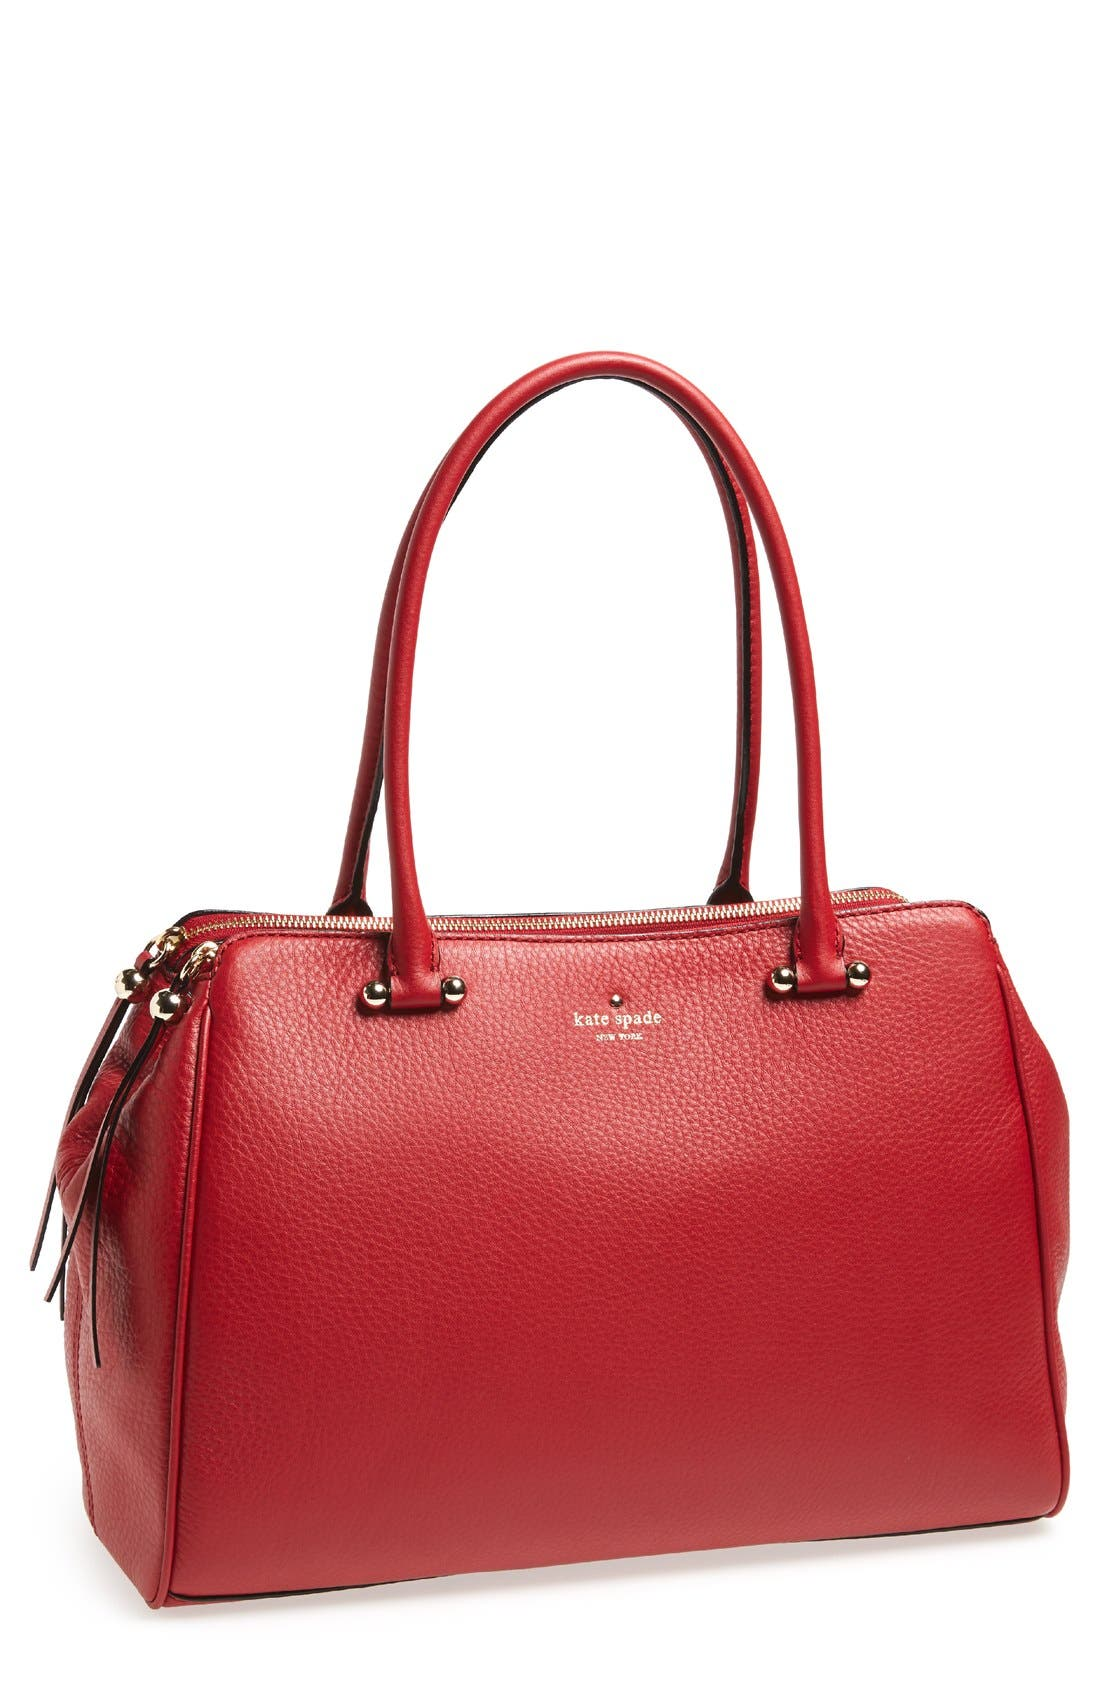 Main Image - kate spade new york 'kensington' leather tote